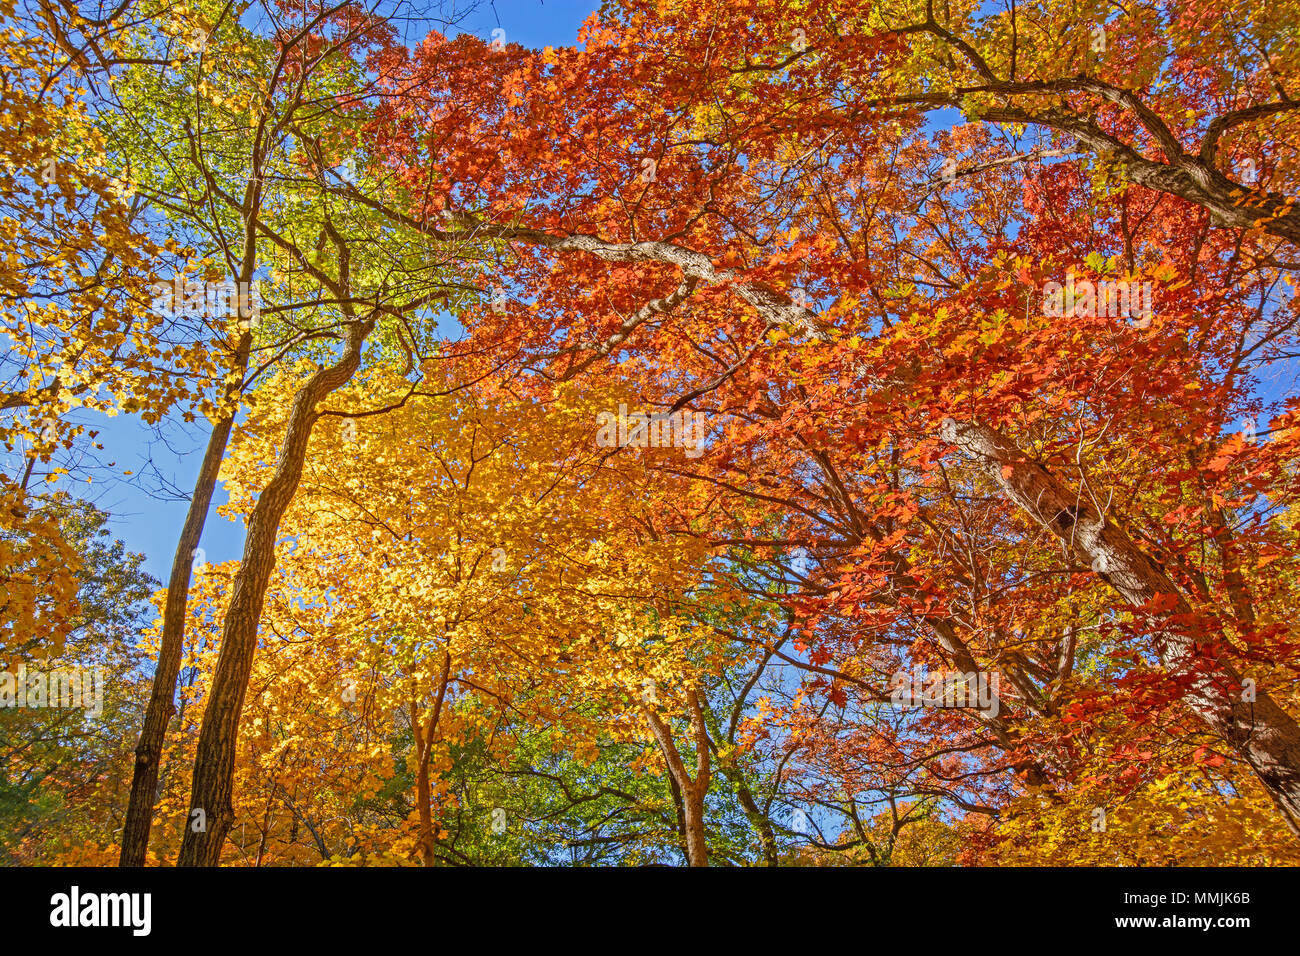 Looking up into Fall Colors in Backbone State Park in Iowa - Stock Image